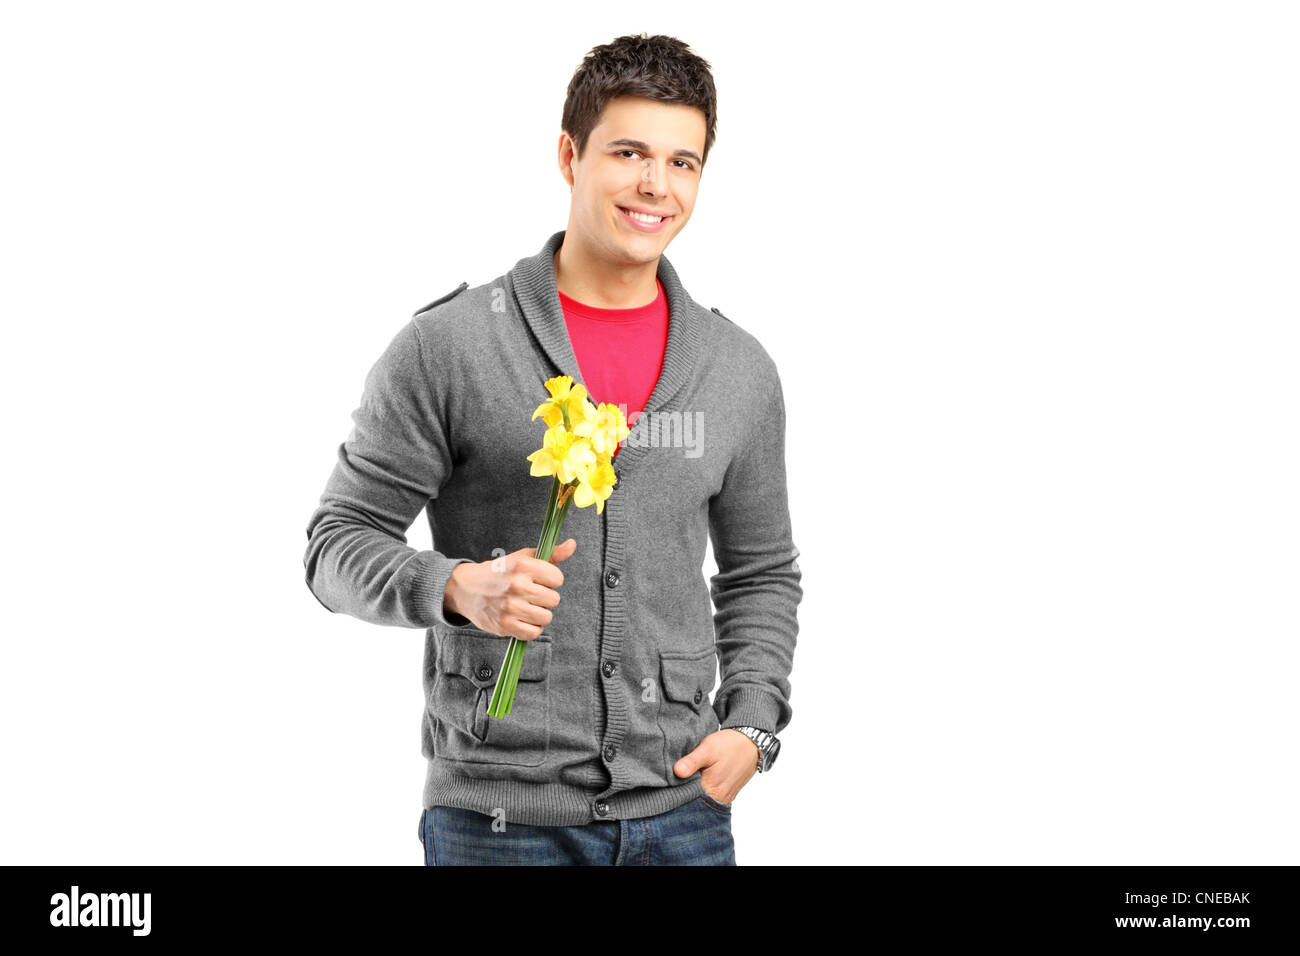 Portrait of a smiling male holding flowers and waiting for somebody to come isolated on white background - Stock Image